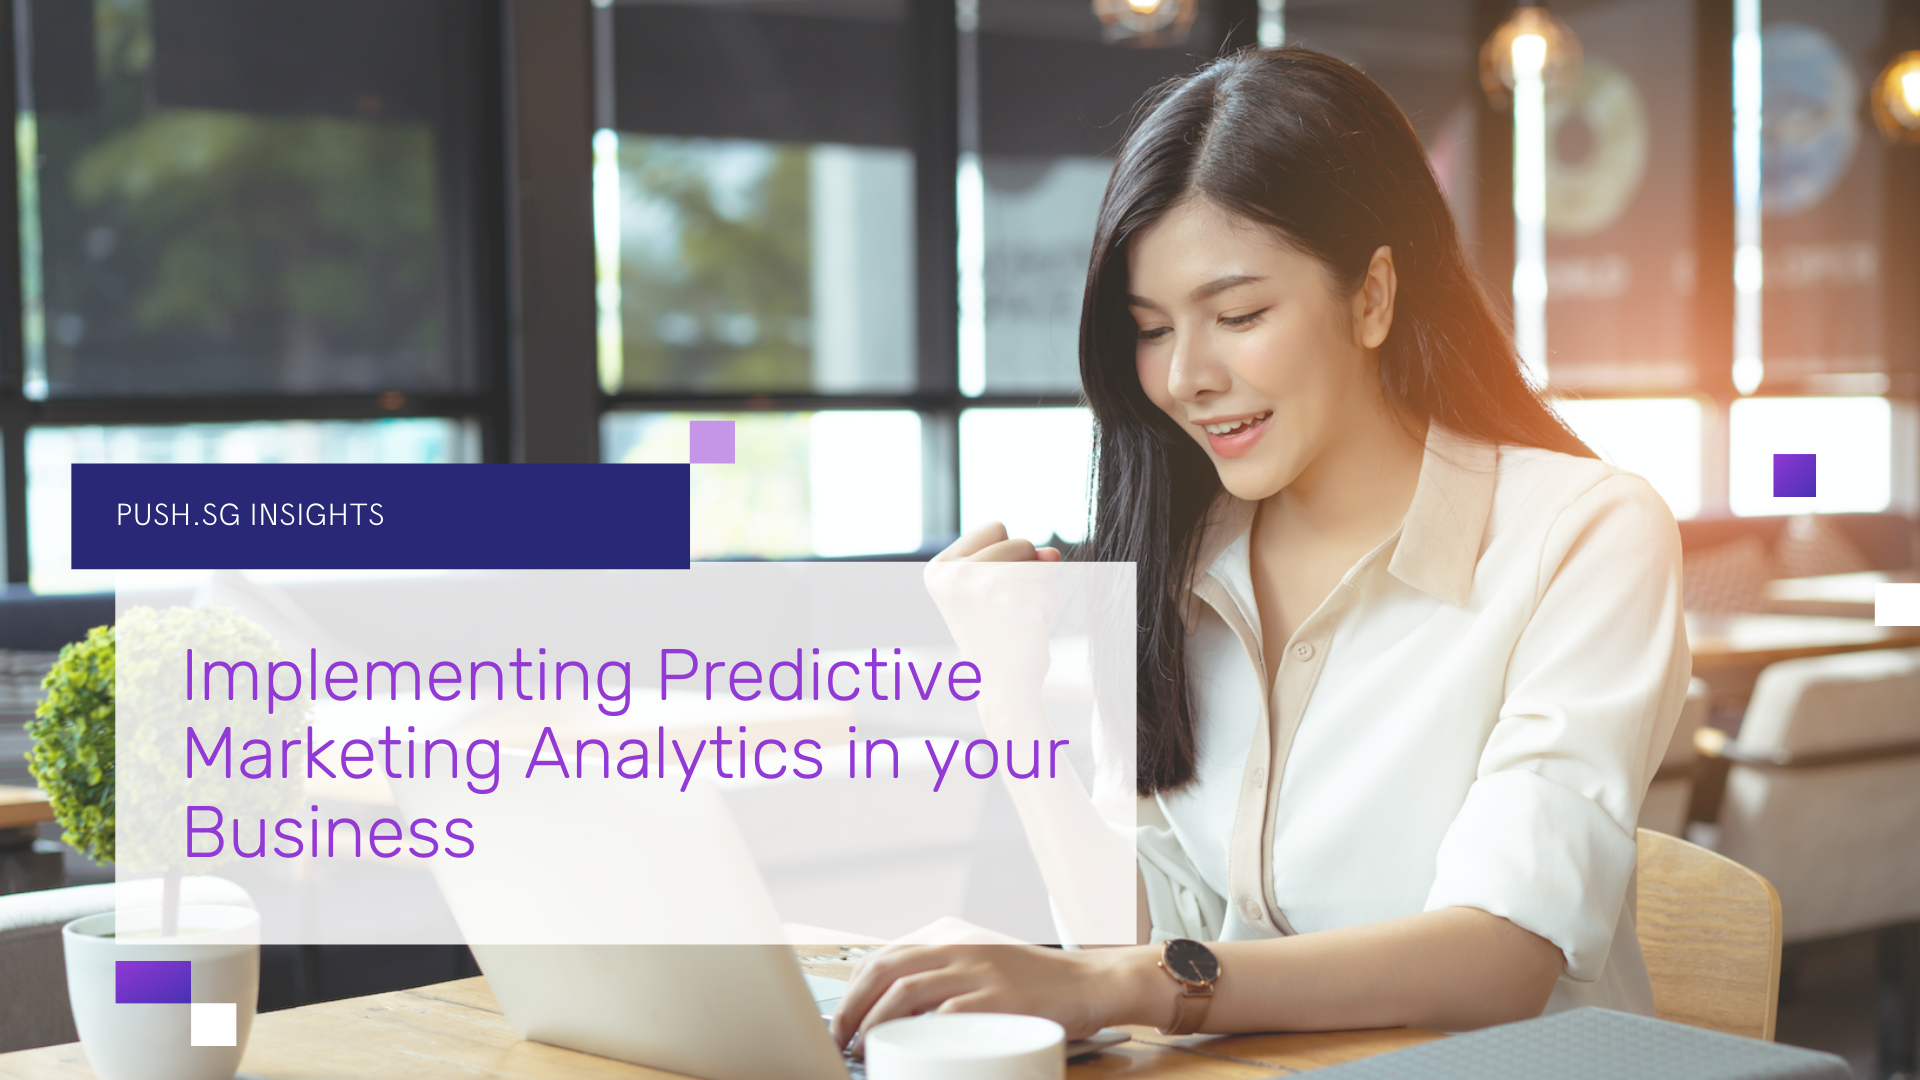 Implementing Predictive Marketing Analytics in your Business